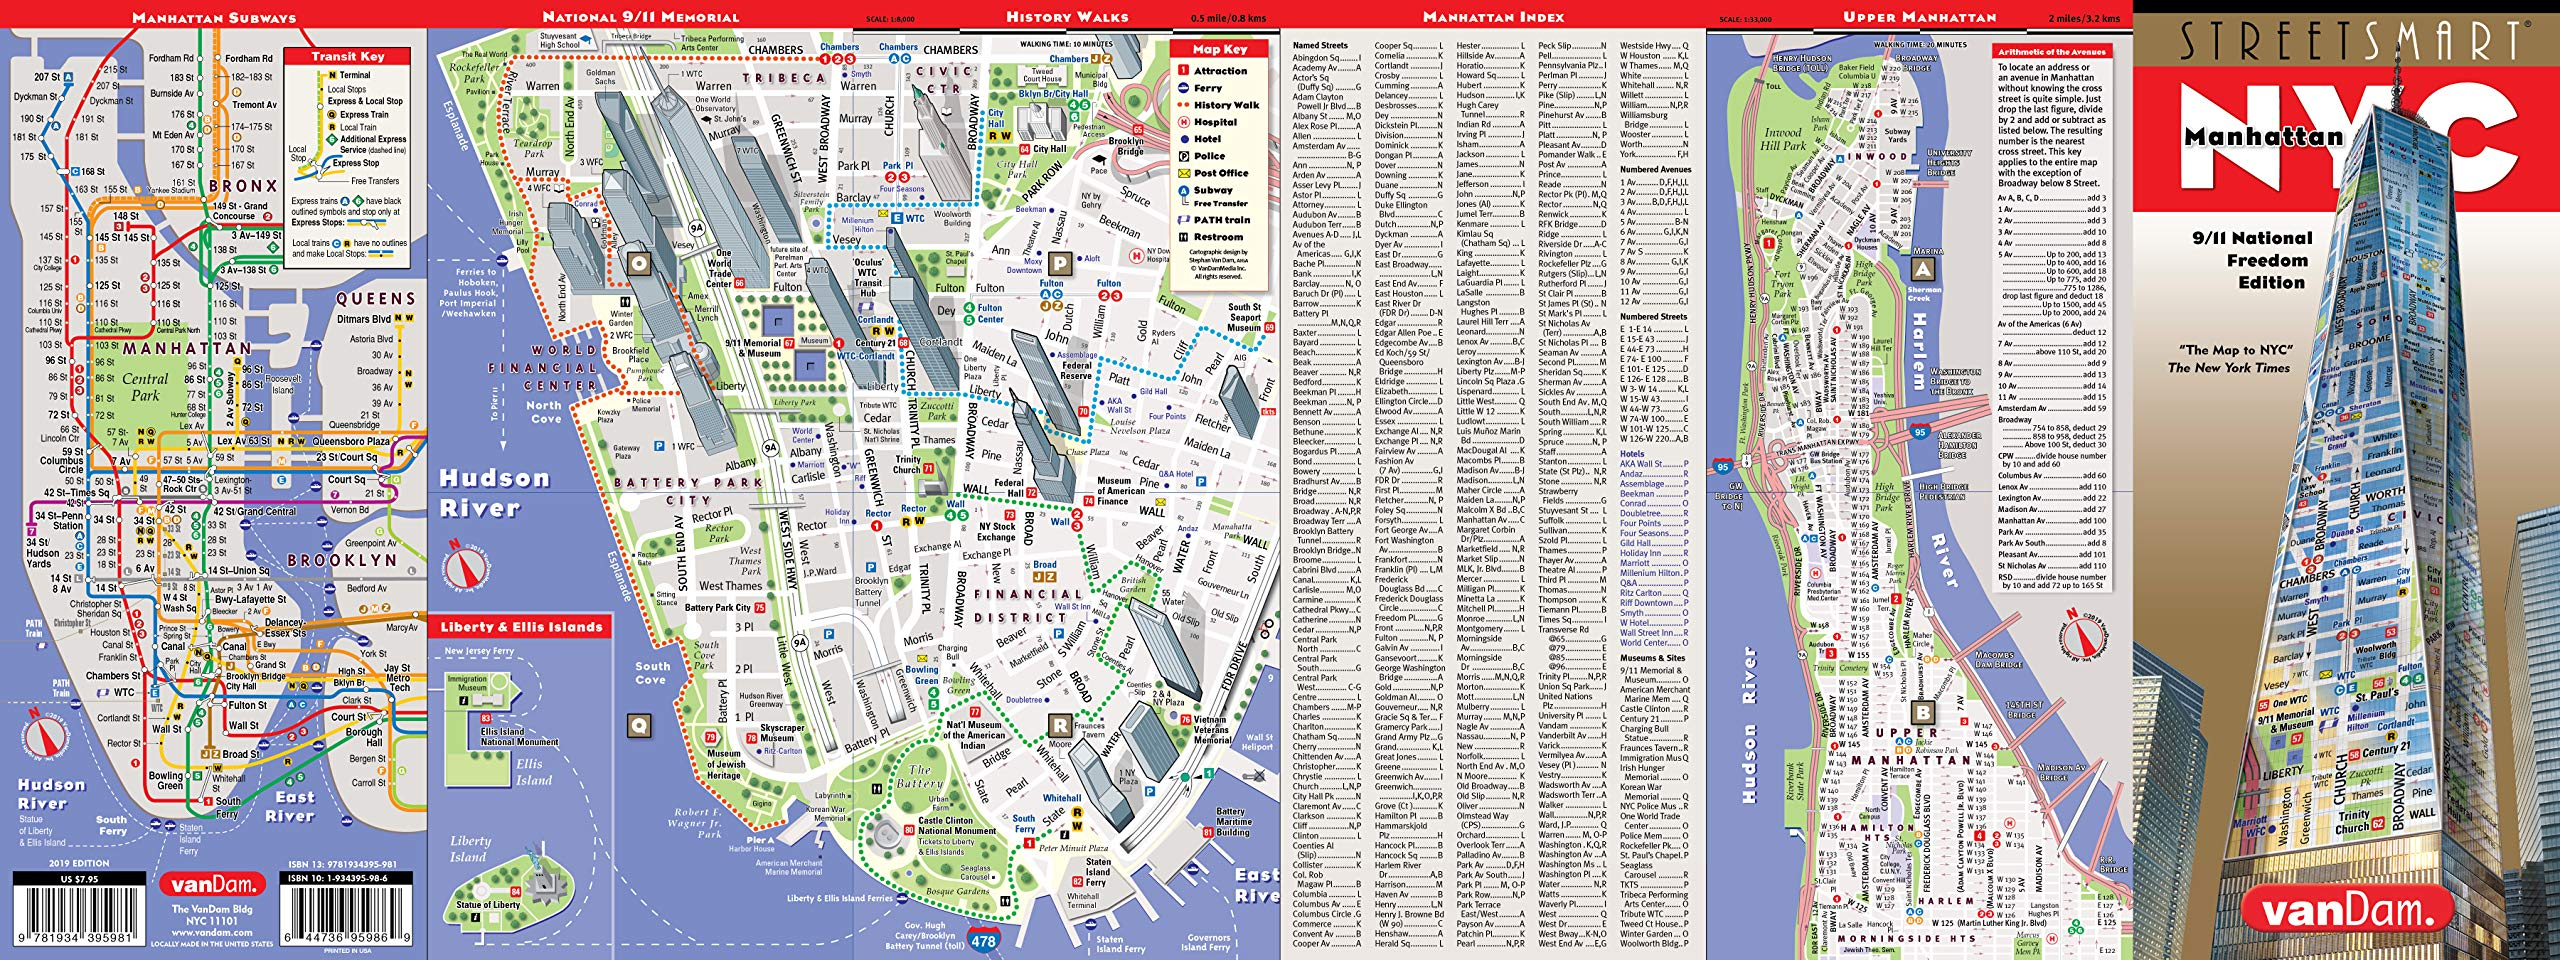 StreetSmart NYC Map 9/11 Edition by VanDam -- Laminated City ... on jersey city map, queens map, west village map, ny map, roosevelt island map, central park map, throgs neck bridge map, madison square garden map, new york map, harlem map, nassau county map, long island map, path map, randall's island map, murray hill map, times square map, fire island map, brooklyn map, lincoln center map, north brother island map,